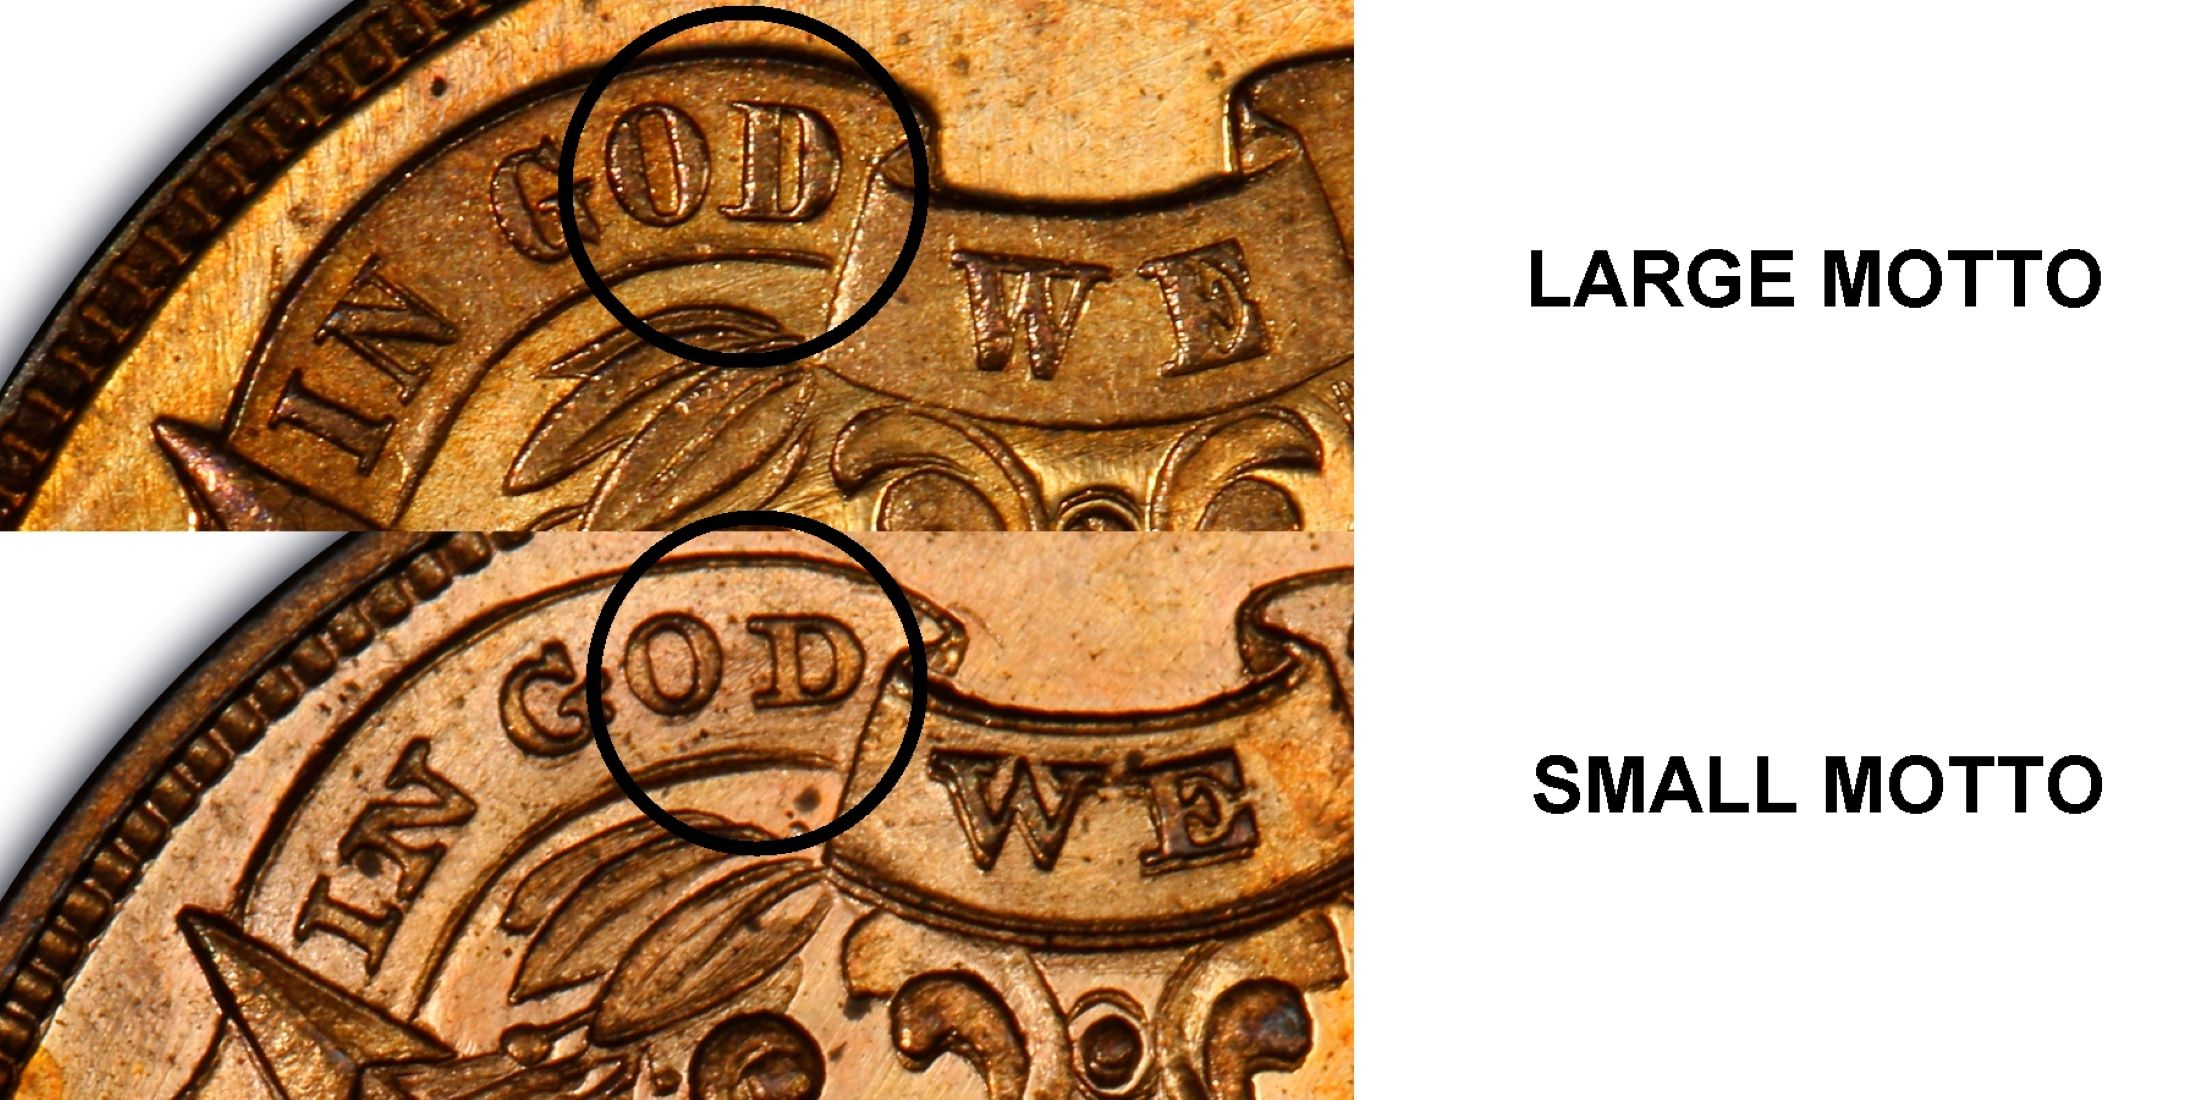 1864 two cent piece--LARGE MOTTO